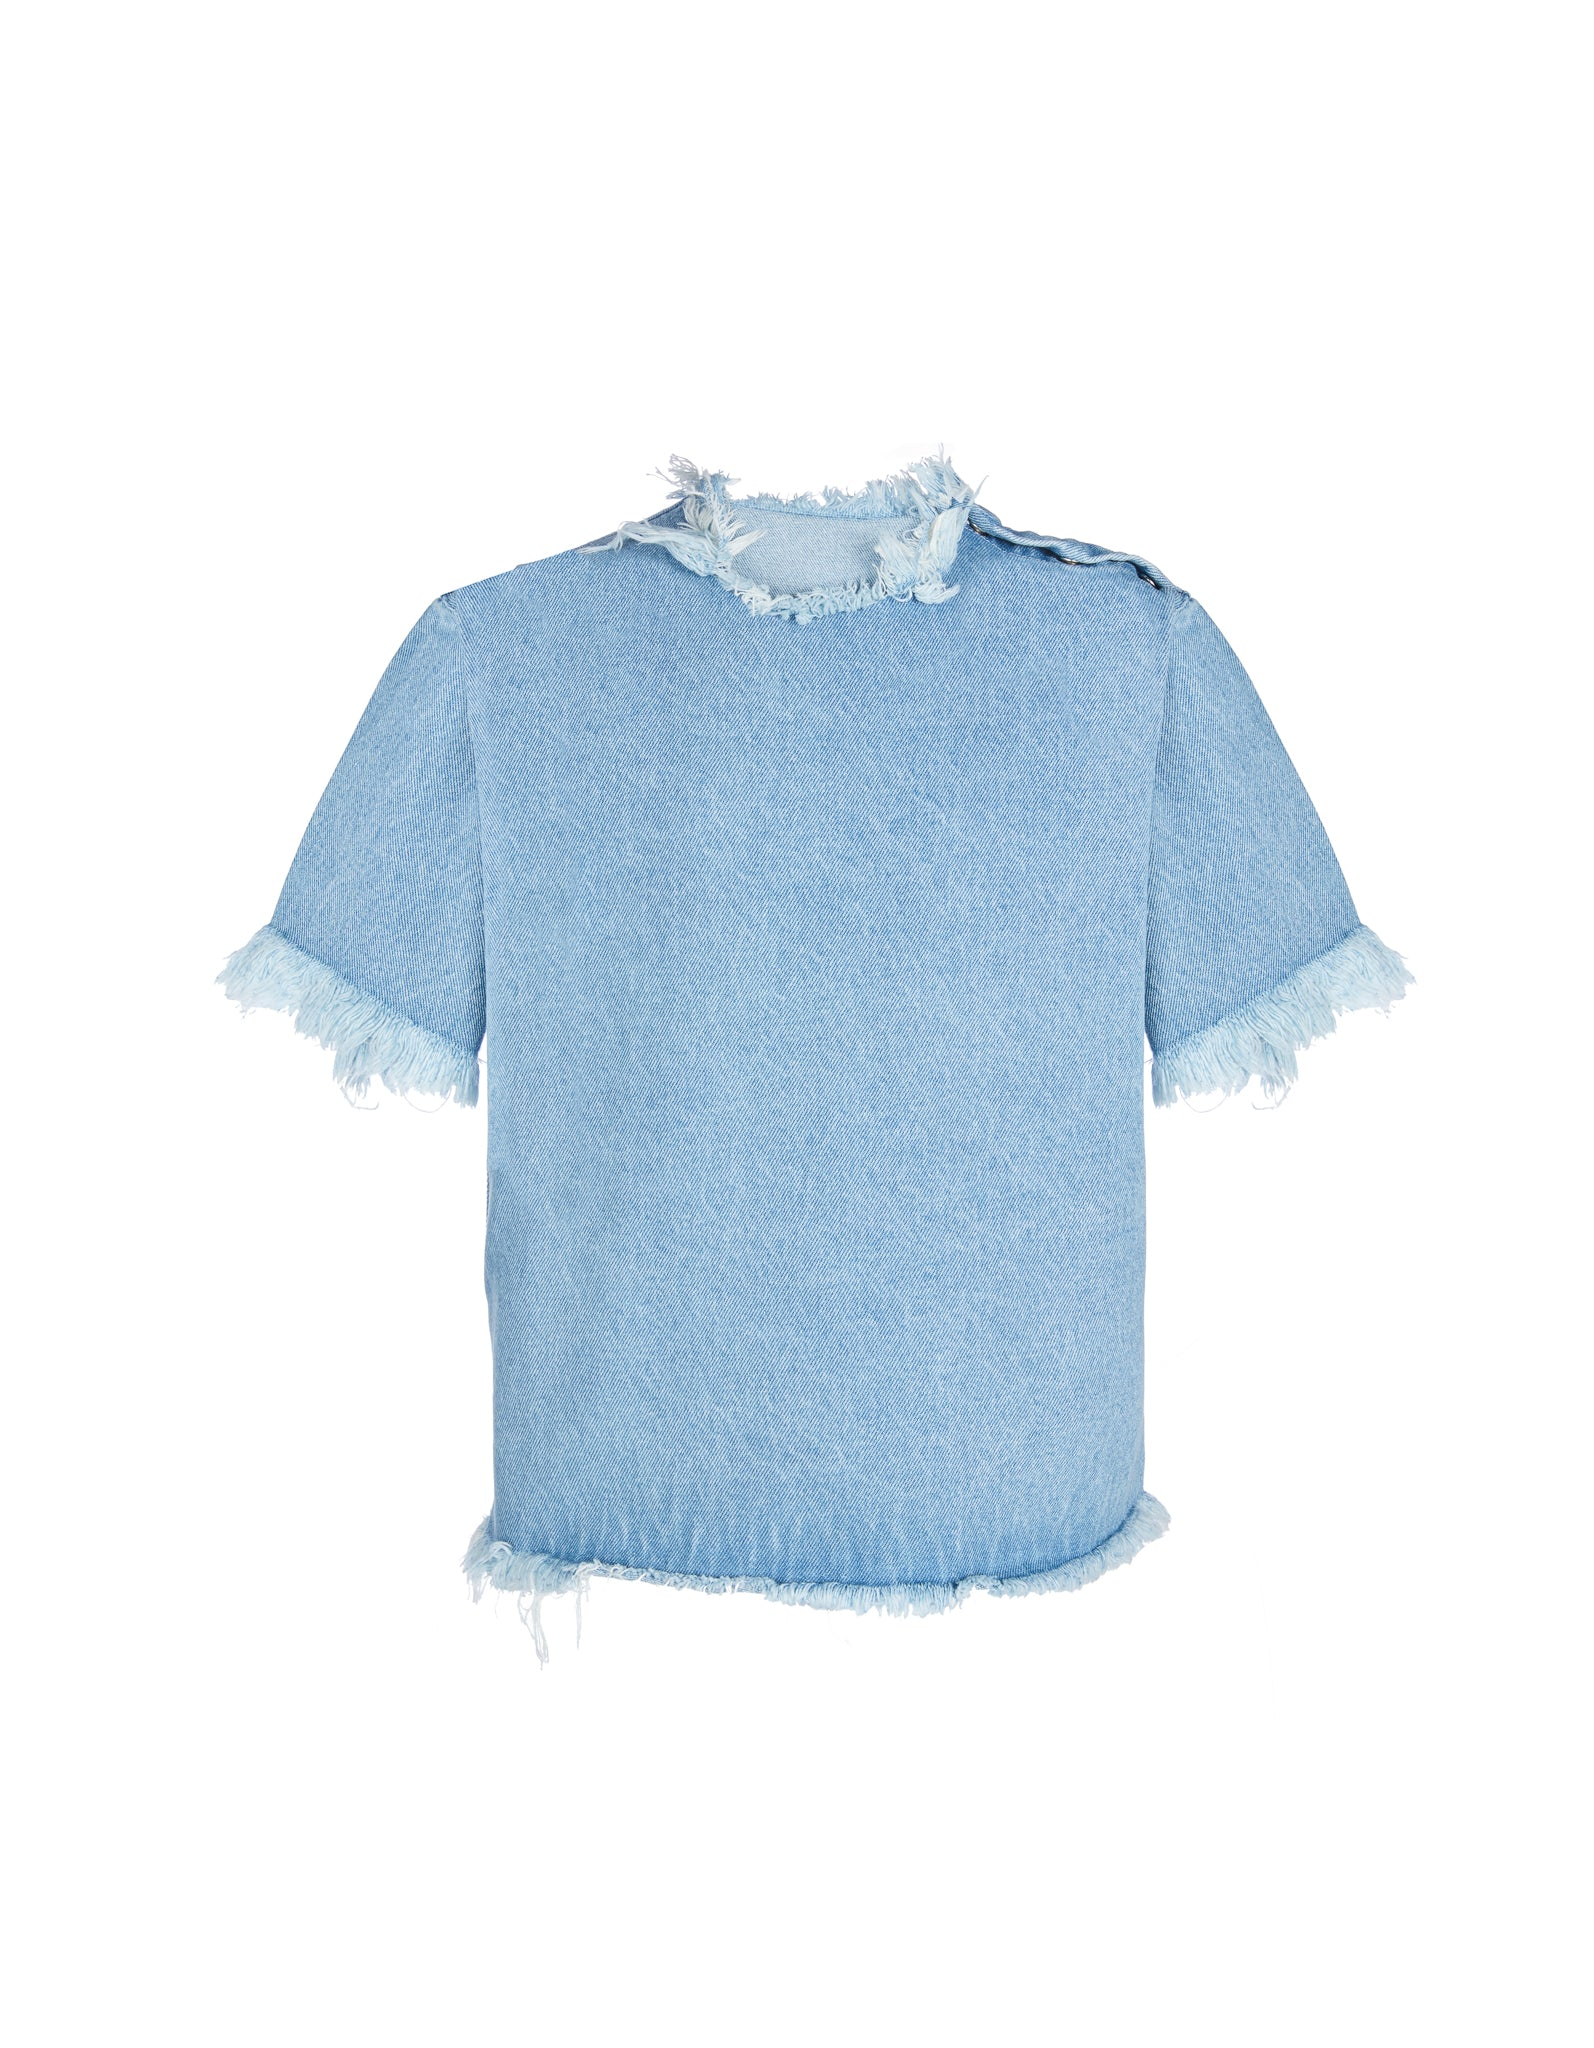 M'A KIDS DENIM OVERSIZED T-SHIRT